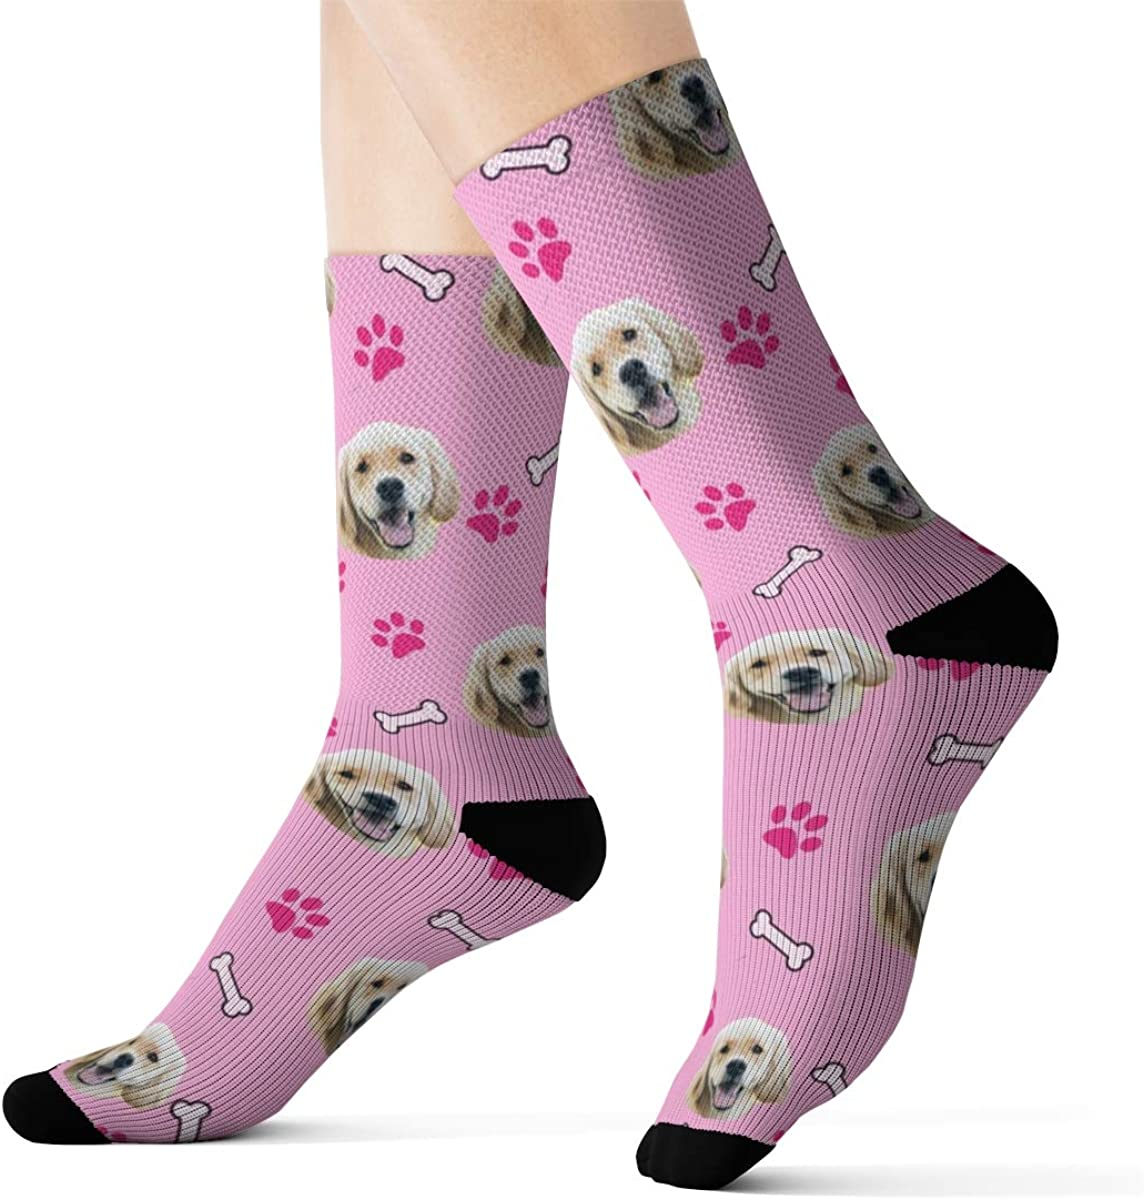 Message Us A Photo Of Your Dog With Your Order Kids Dog Socks Socks With Your Dogs Face On